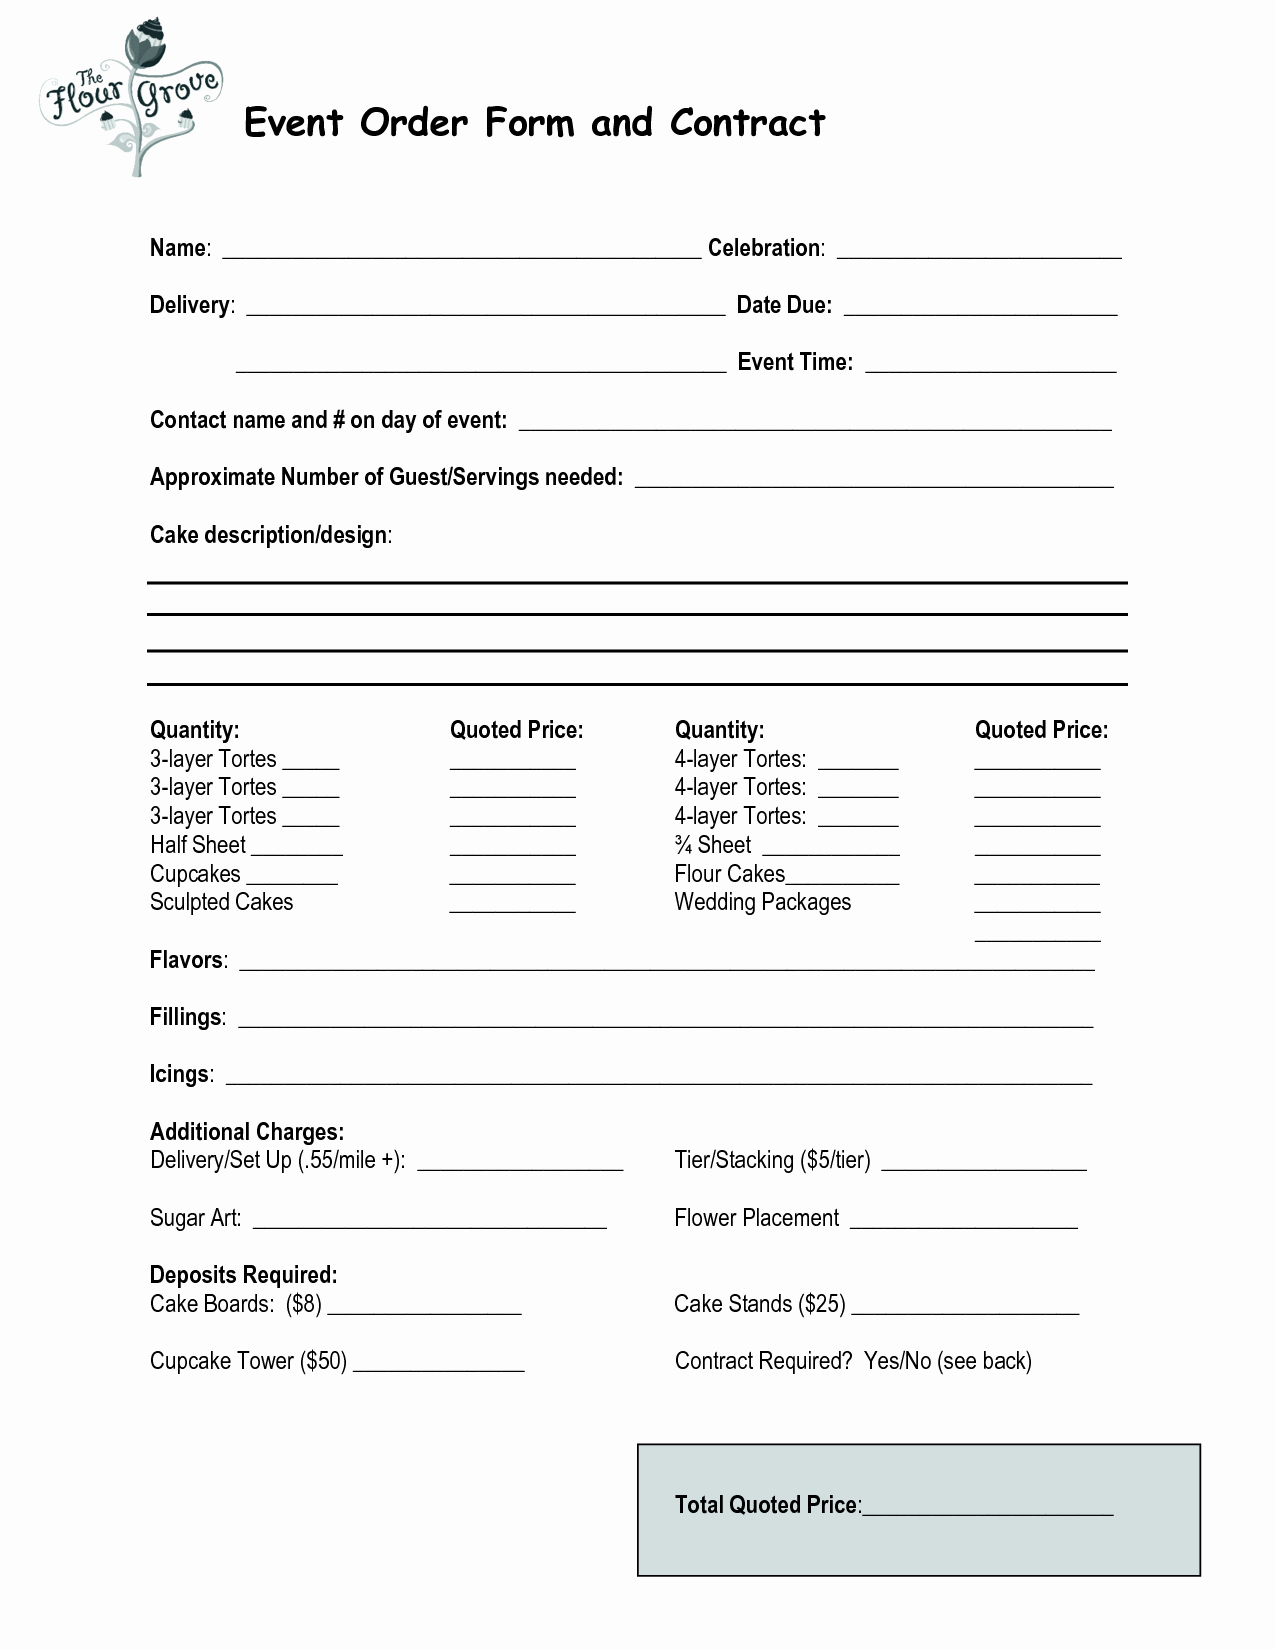 Cake order form Templates Lovely Cake order Contract event order form and Contract